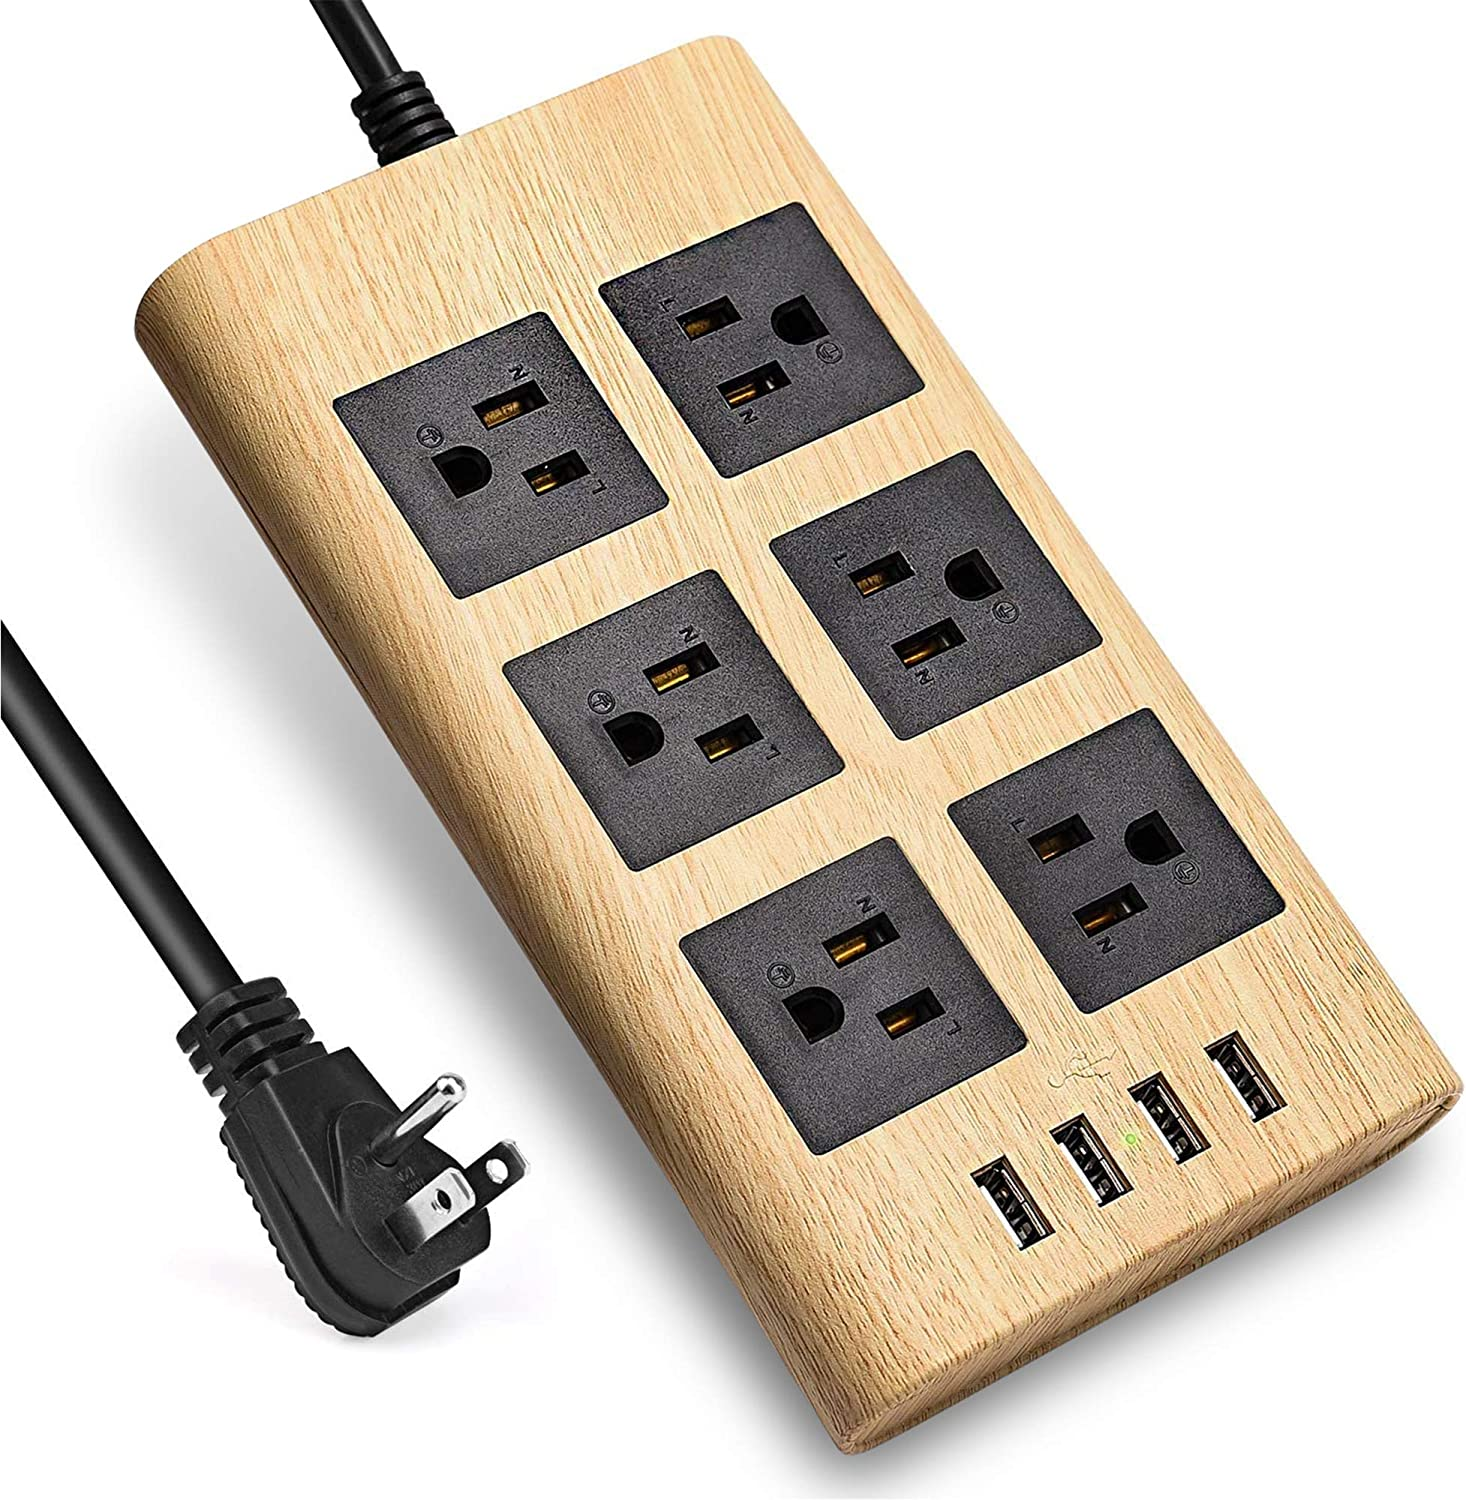 Aracky Surge Protector Power Strip with USB, 9.8ft Desktop Extension Cord, Wood Grain Charging Station with 6 Widely Spaced Outlets & 4 USB Charging Ports, for Home, Office, Dorm